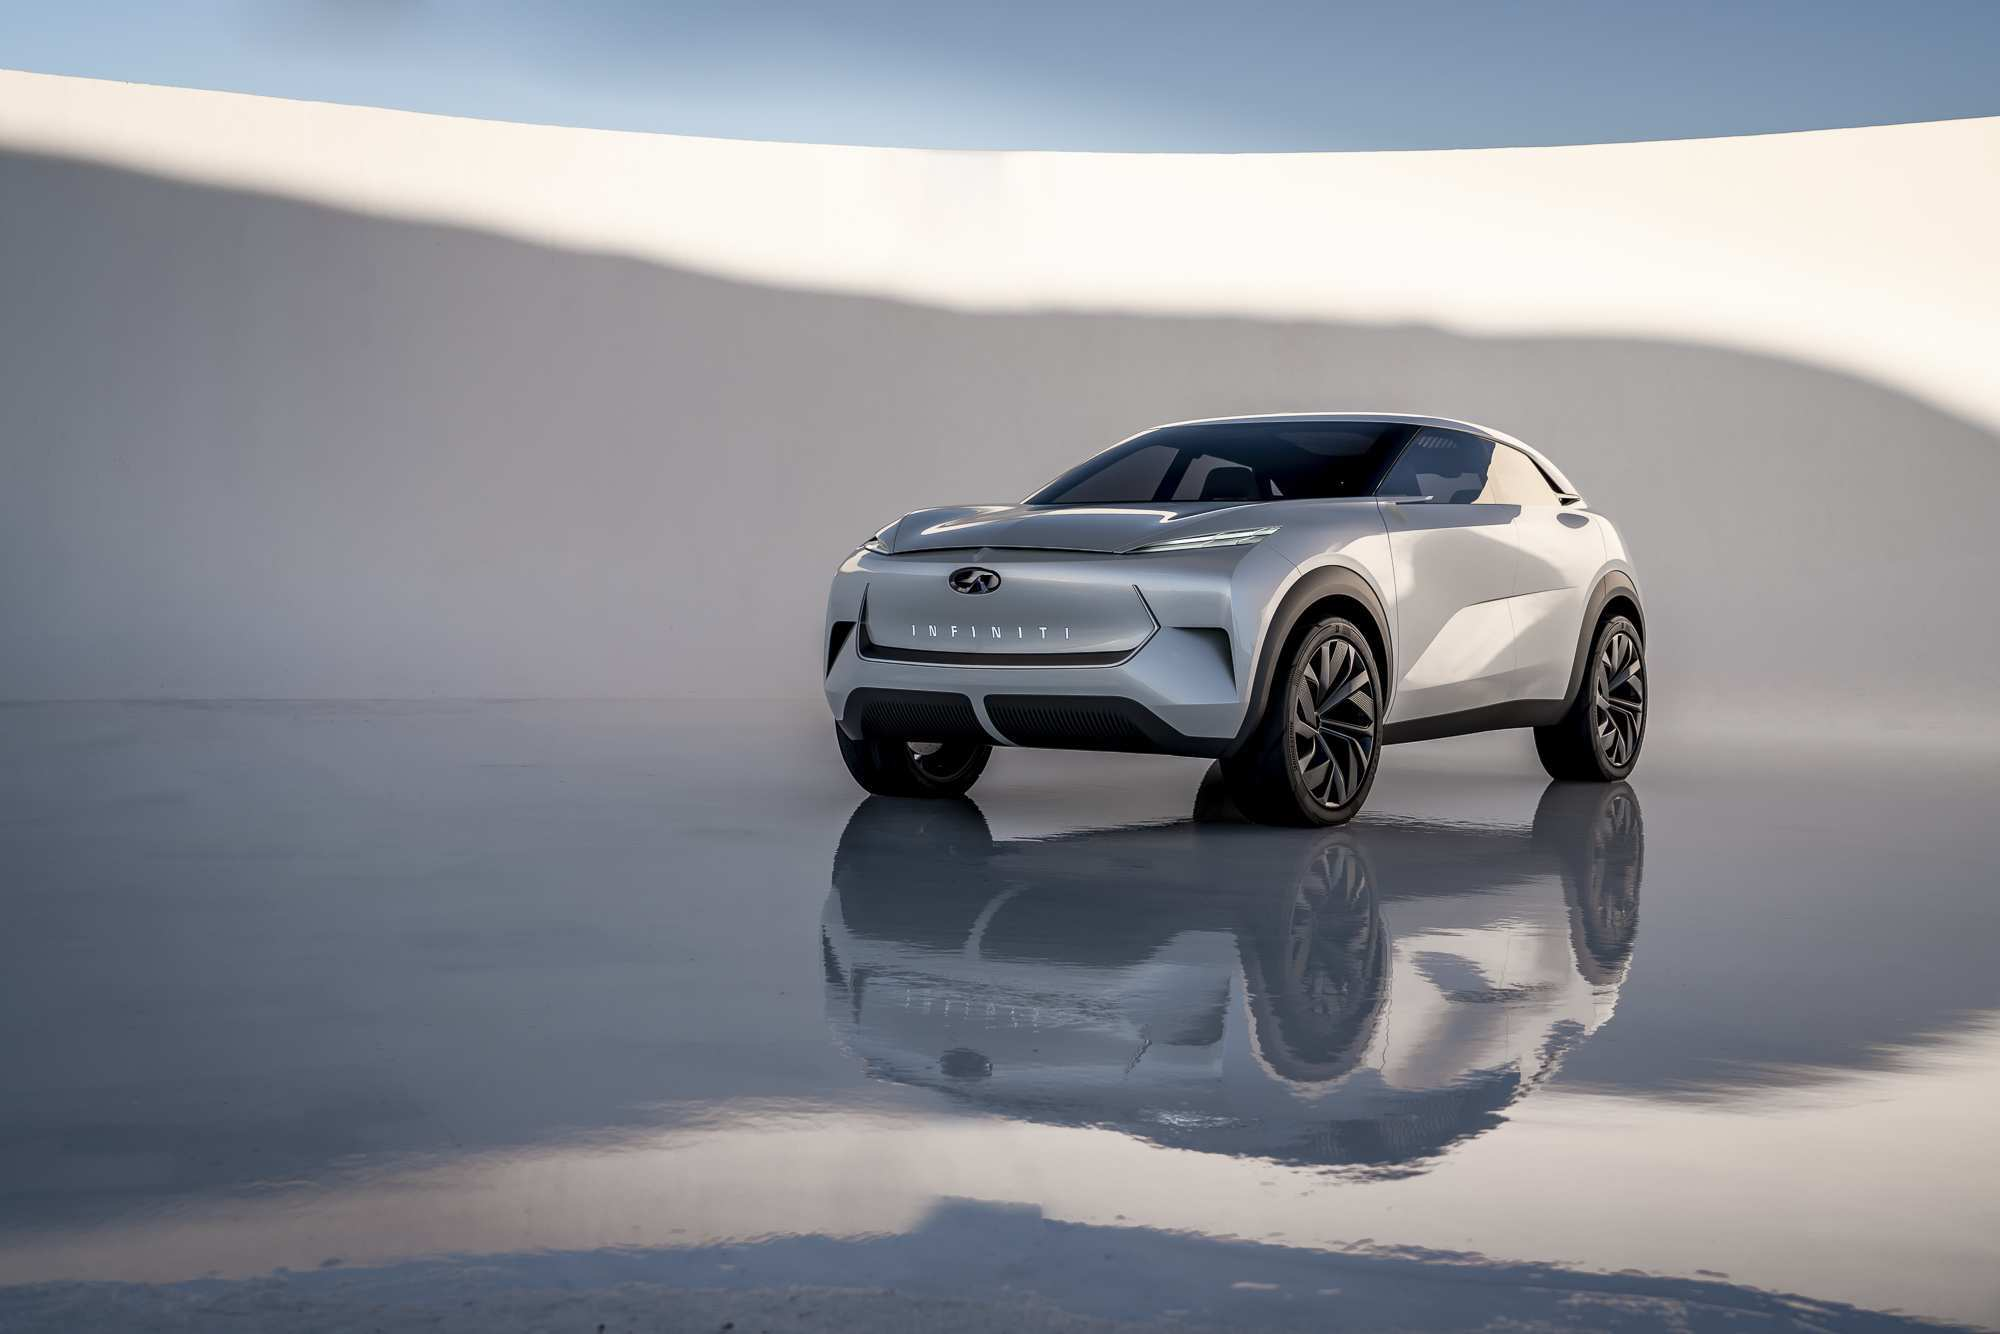 97 Concept of 2019 Infiniti Concept Concept with 2019 Infiniti Concept